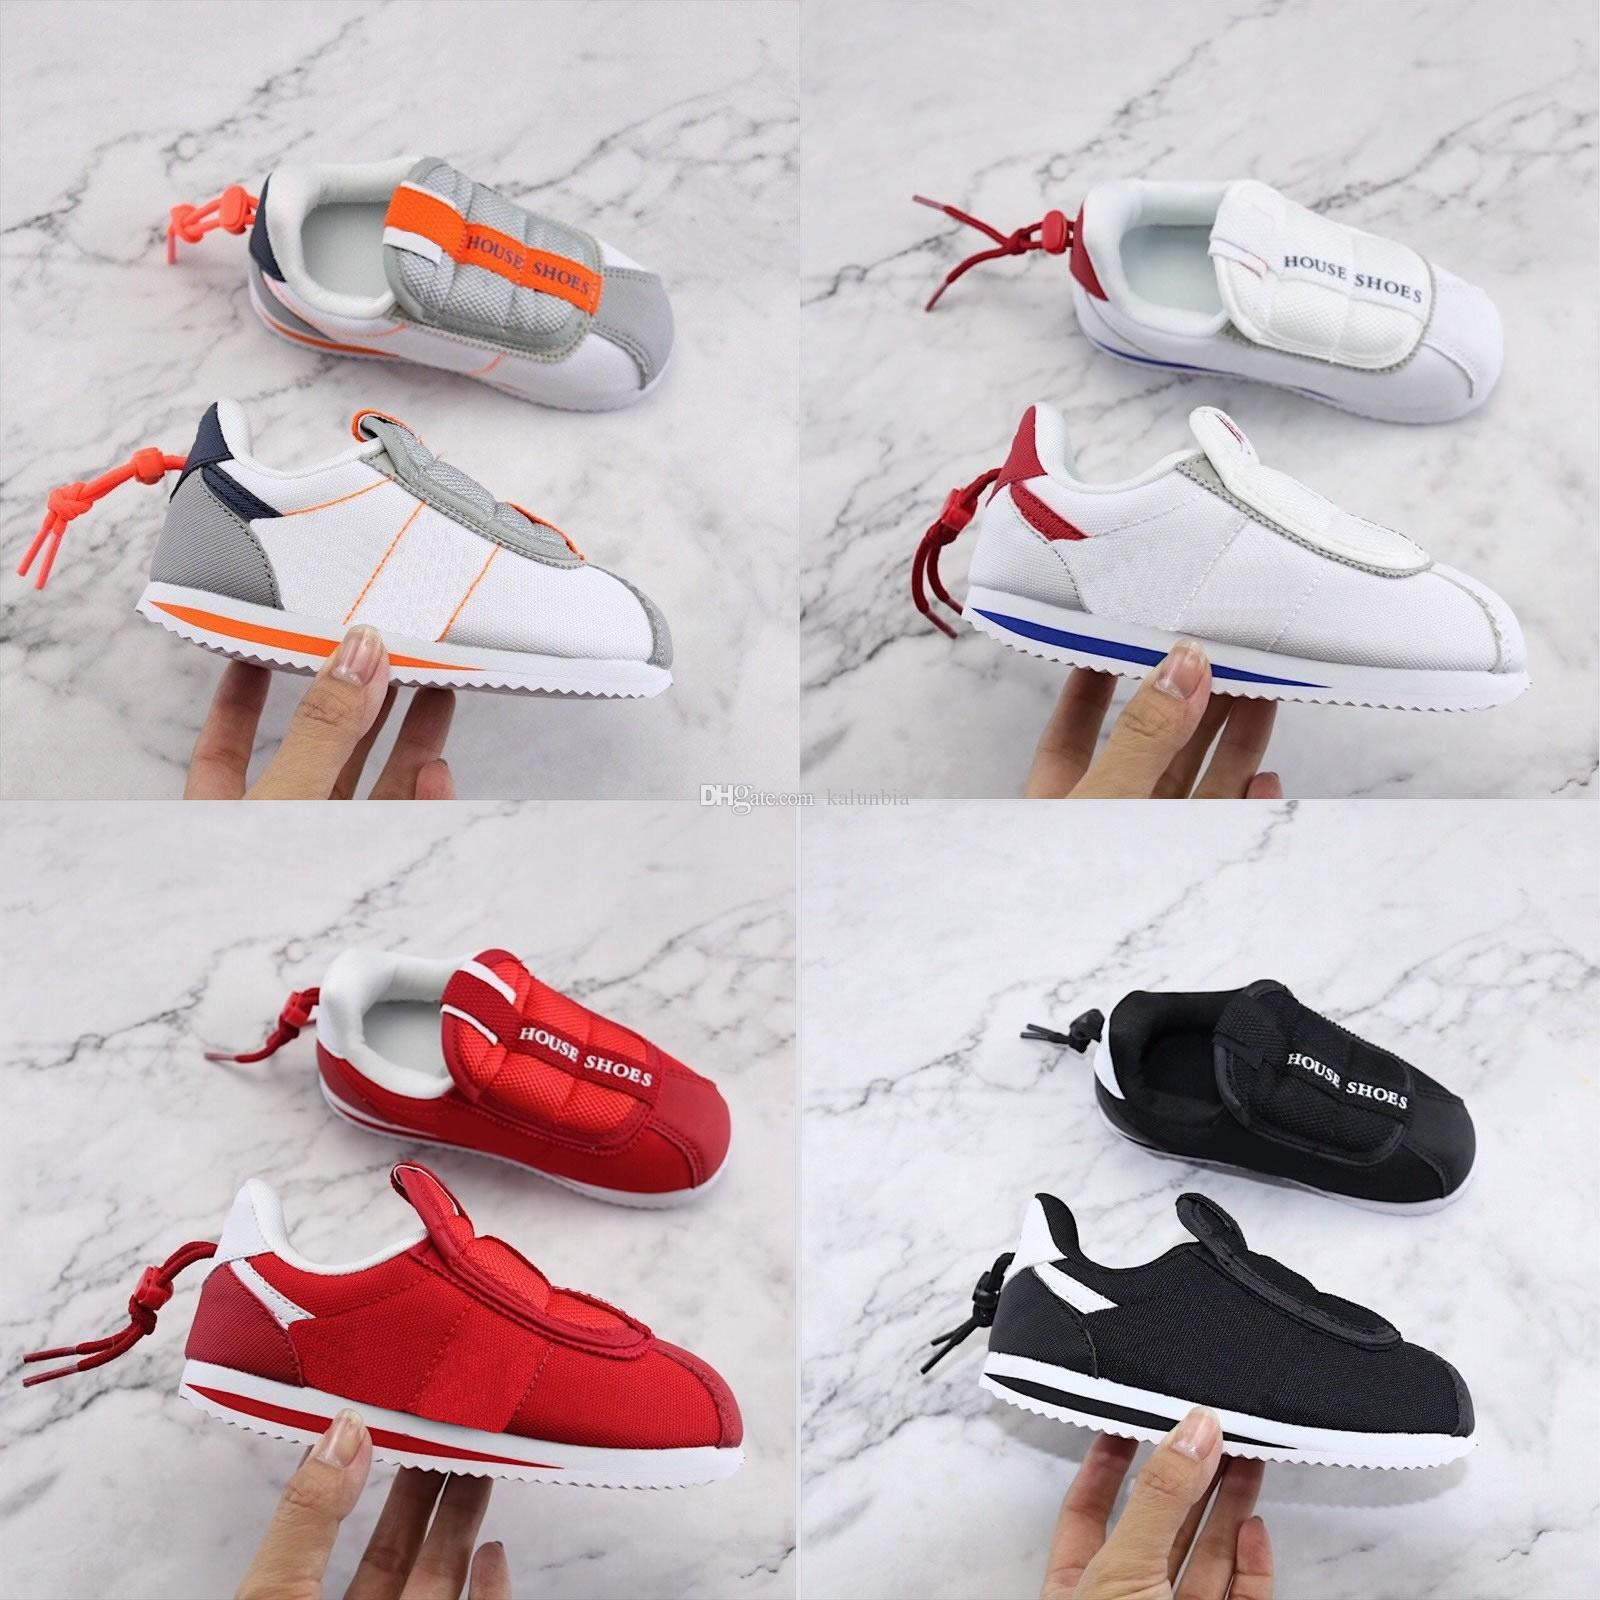 promo code 996b4 da2bd Infant Toddler KENNY IV 4 House Shoes Kendrick Lamar Cortez Basic Slip Kids  Boys Girls Youth Childrens Running Shoes EUR 22-35 US 6C-3Y